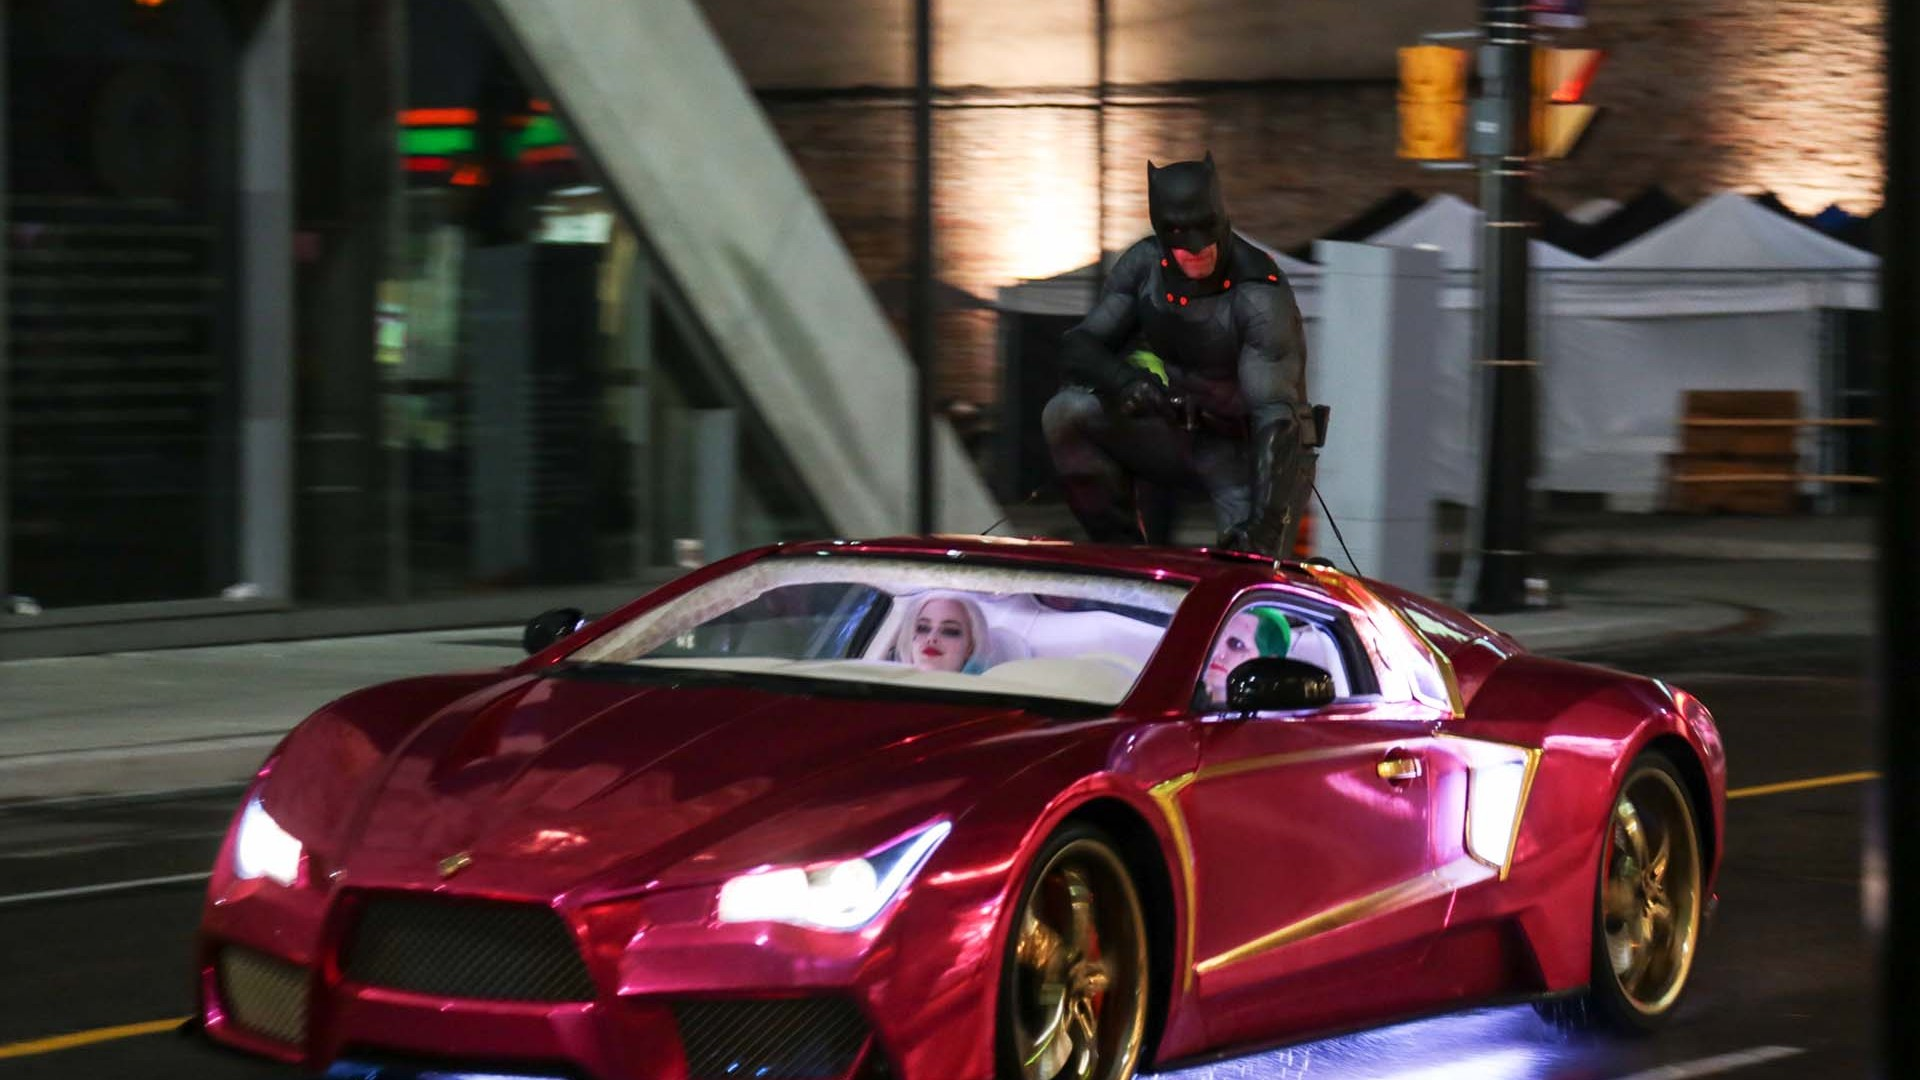 Why the Joker's car is the star of Suicide Squad | Square Mile